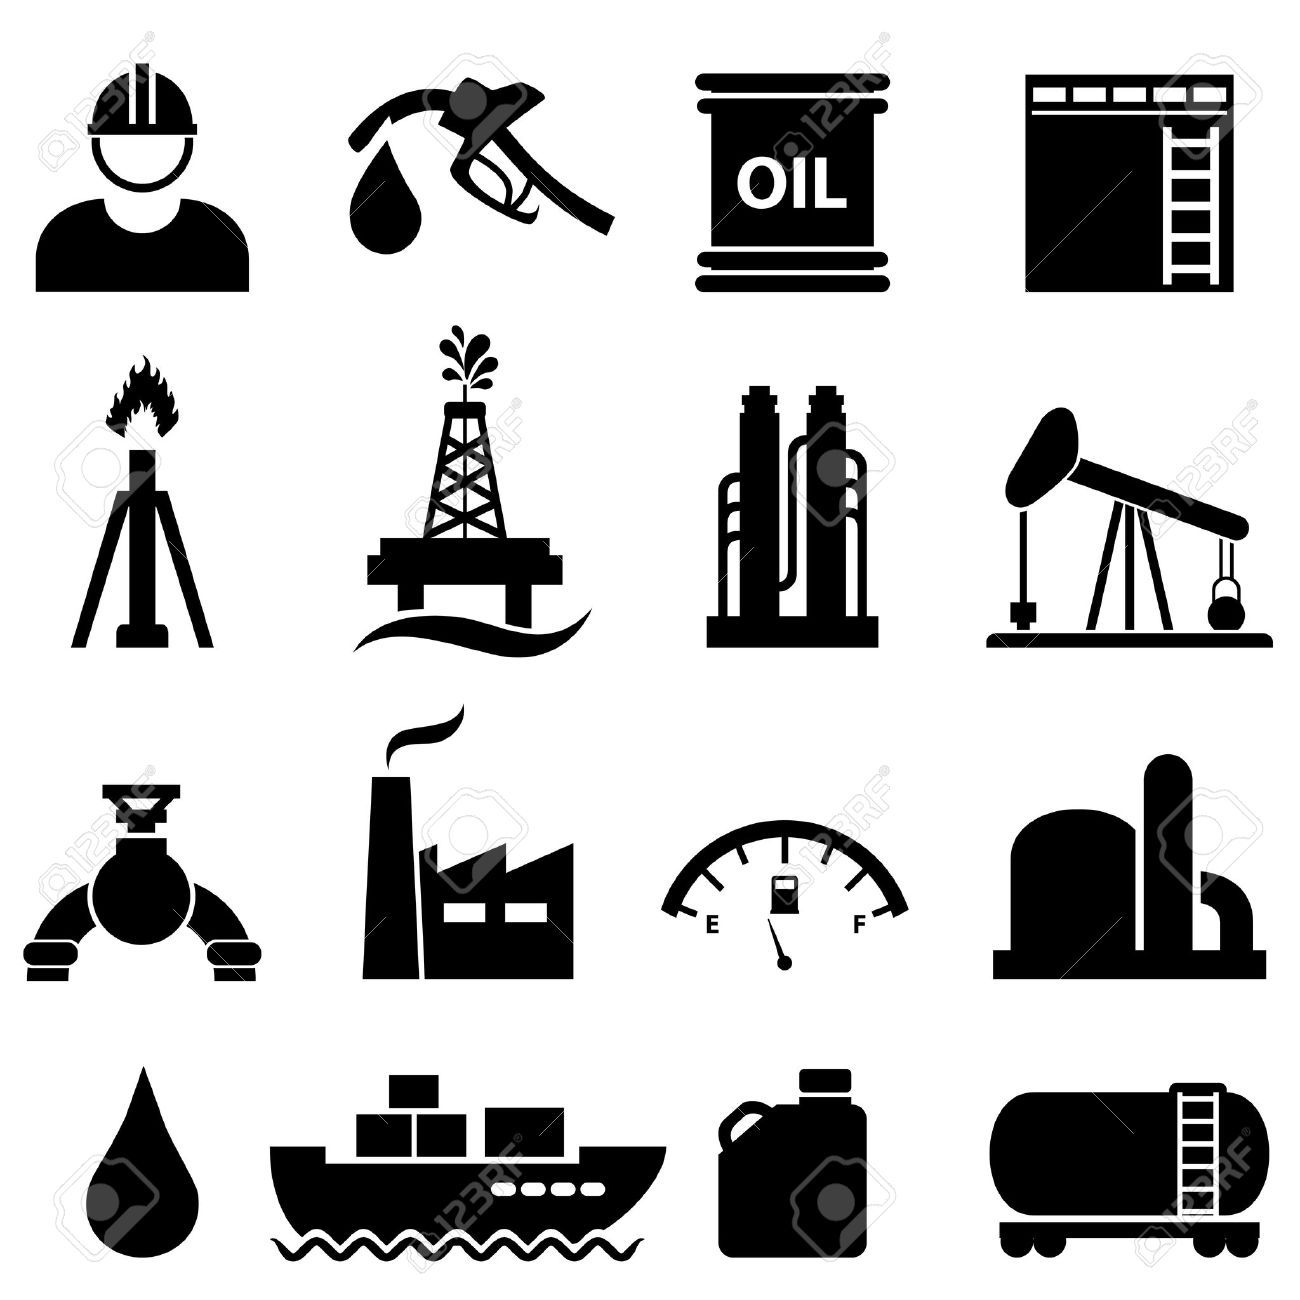 oil and gas icon.